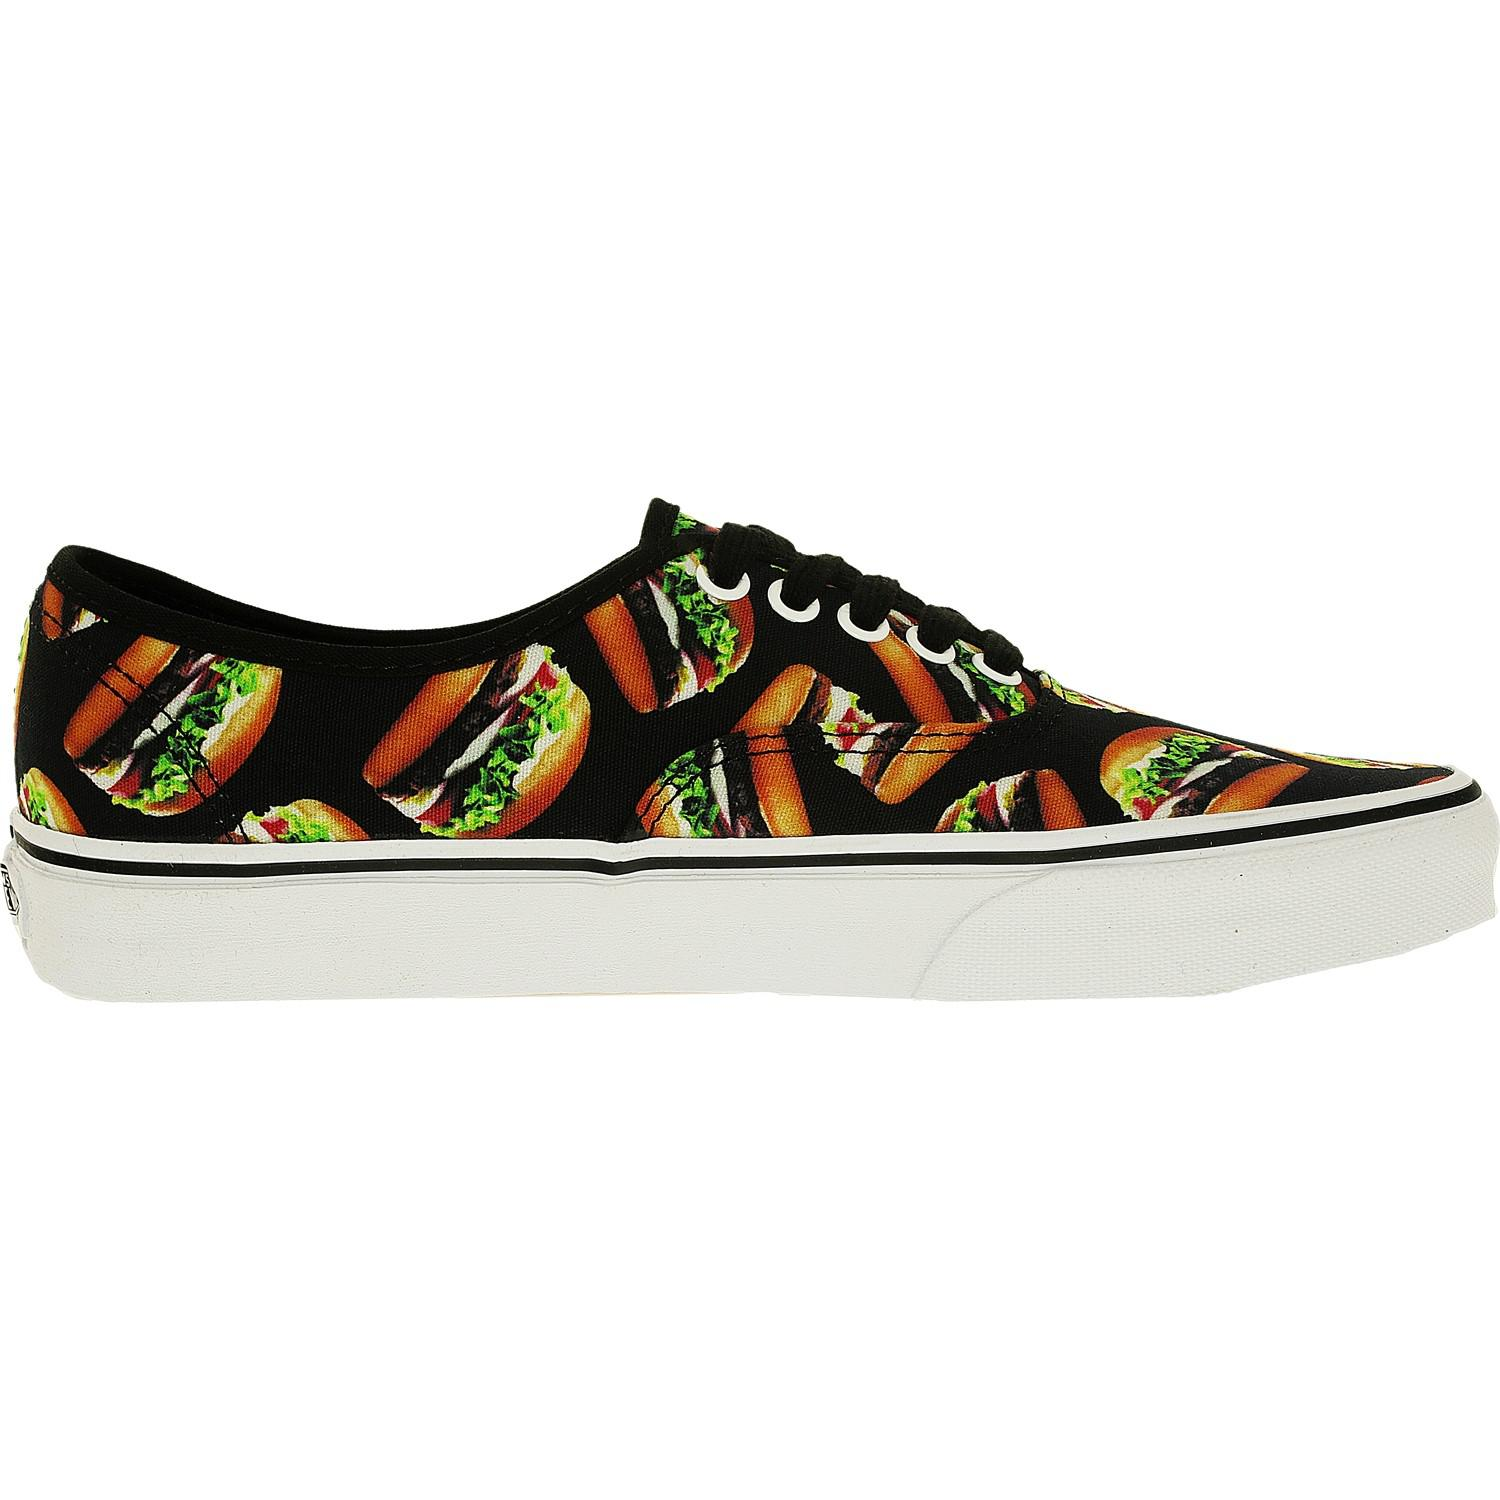 Lyst - Vans Authentic Late Night Black hamburgers Ankle-high Canvas ... b54cdd190